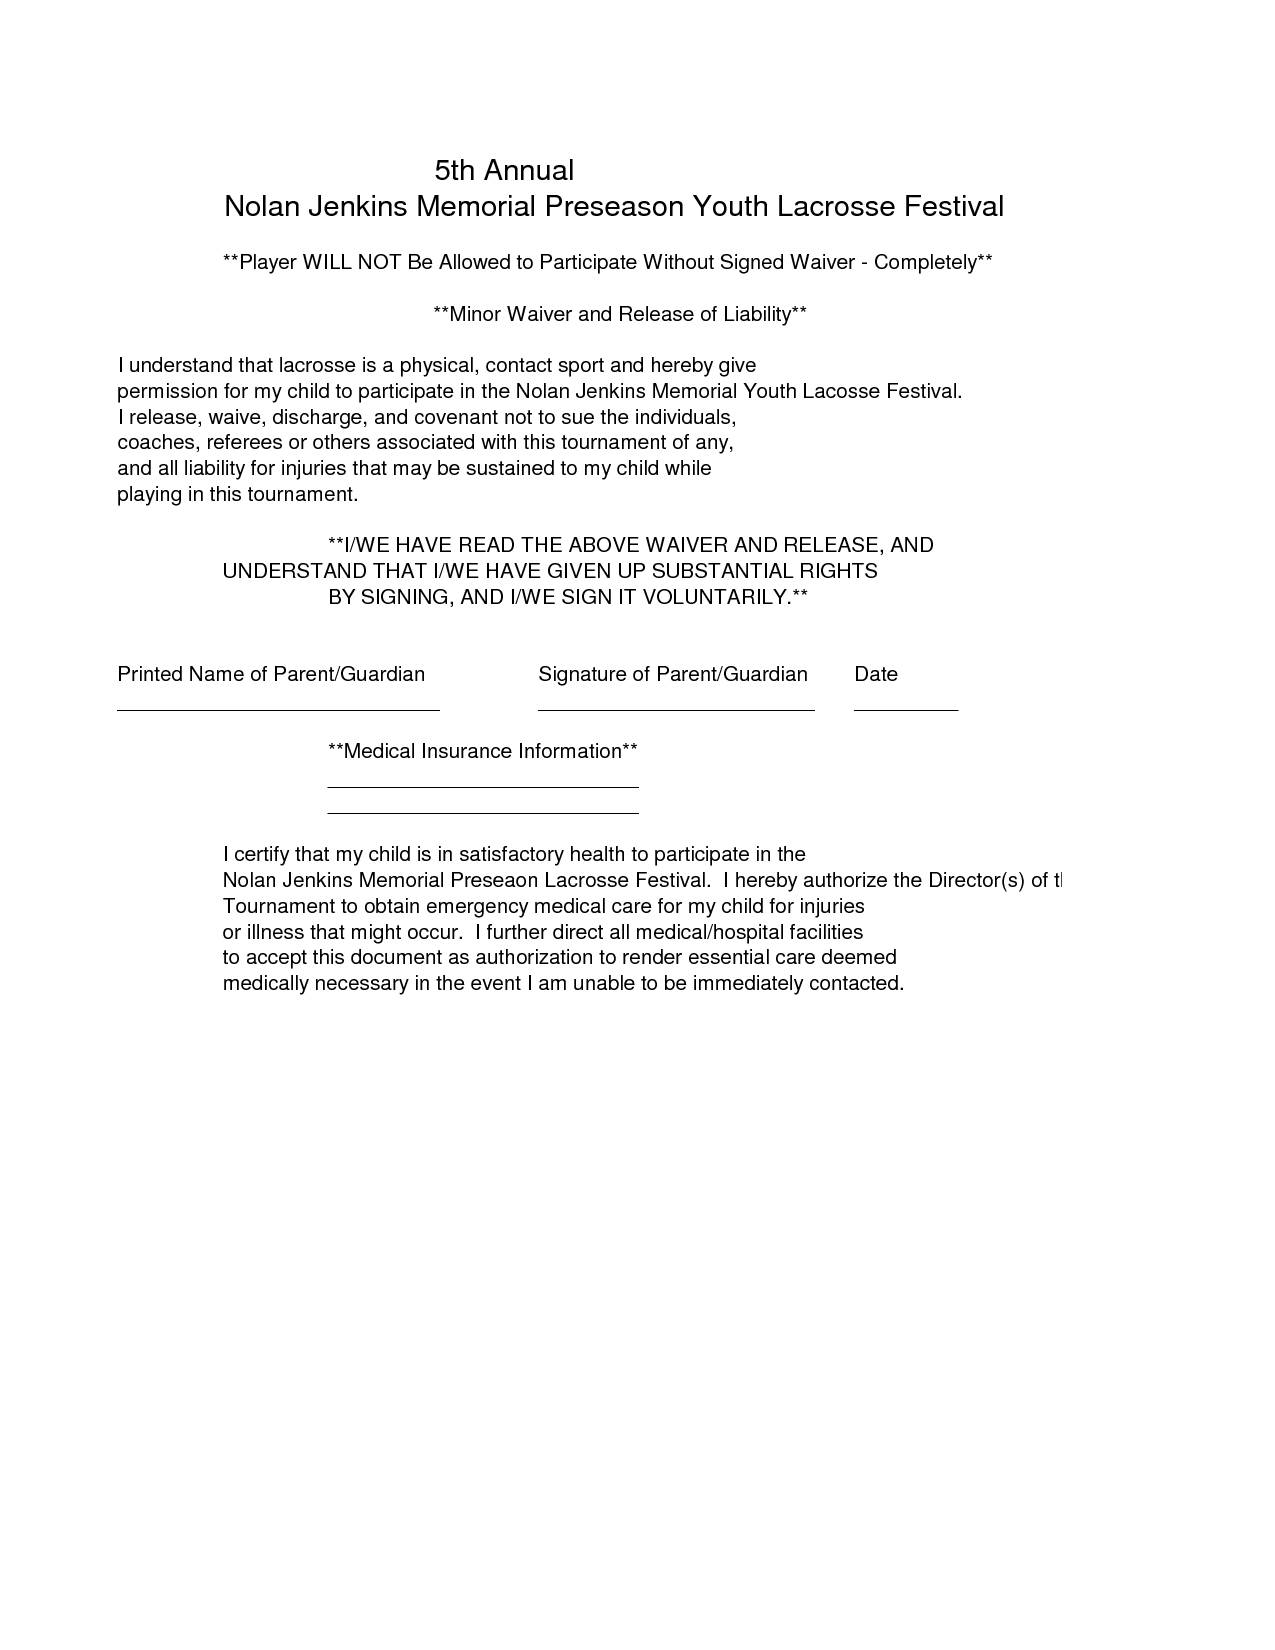 Legal Waiver Of Liability Template